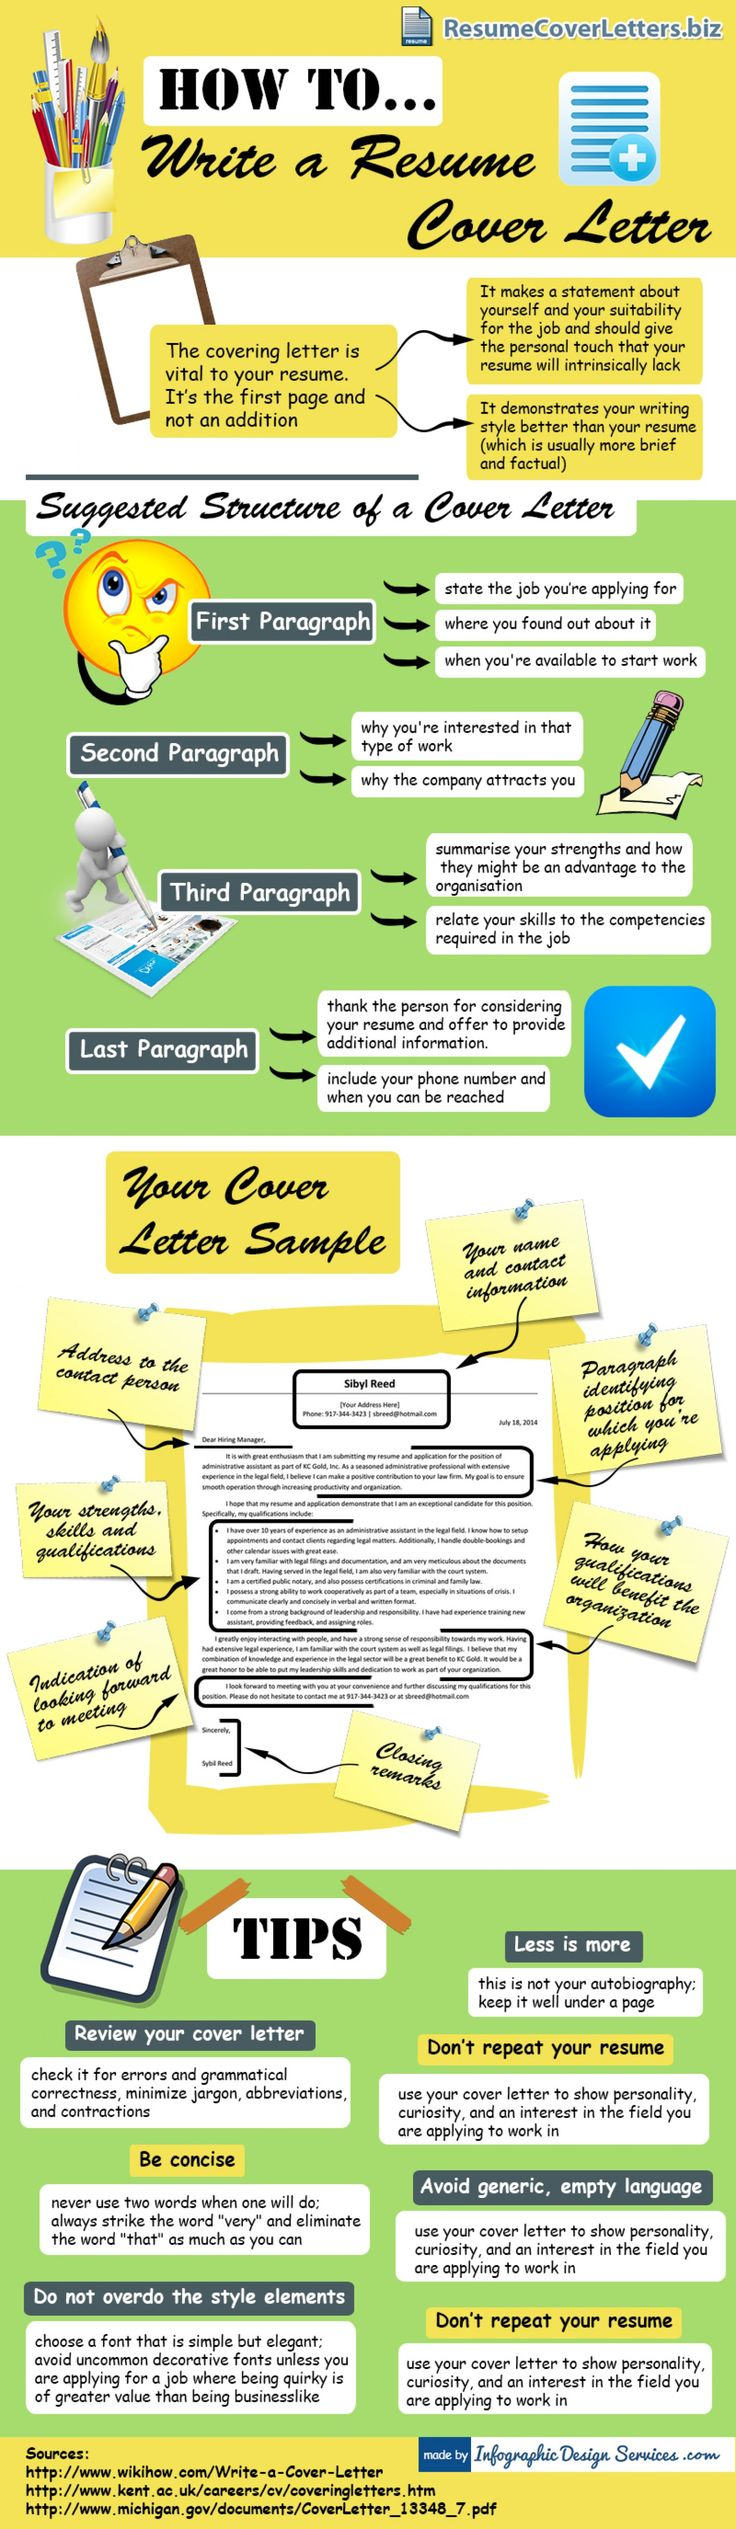 Resume Cover Letter Writing Tipsgraphic